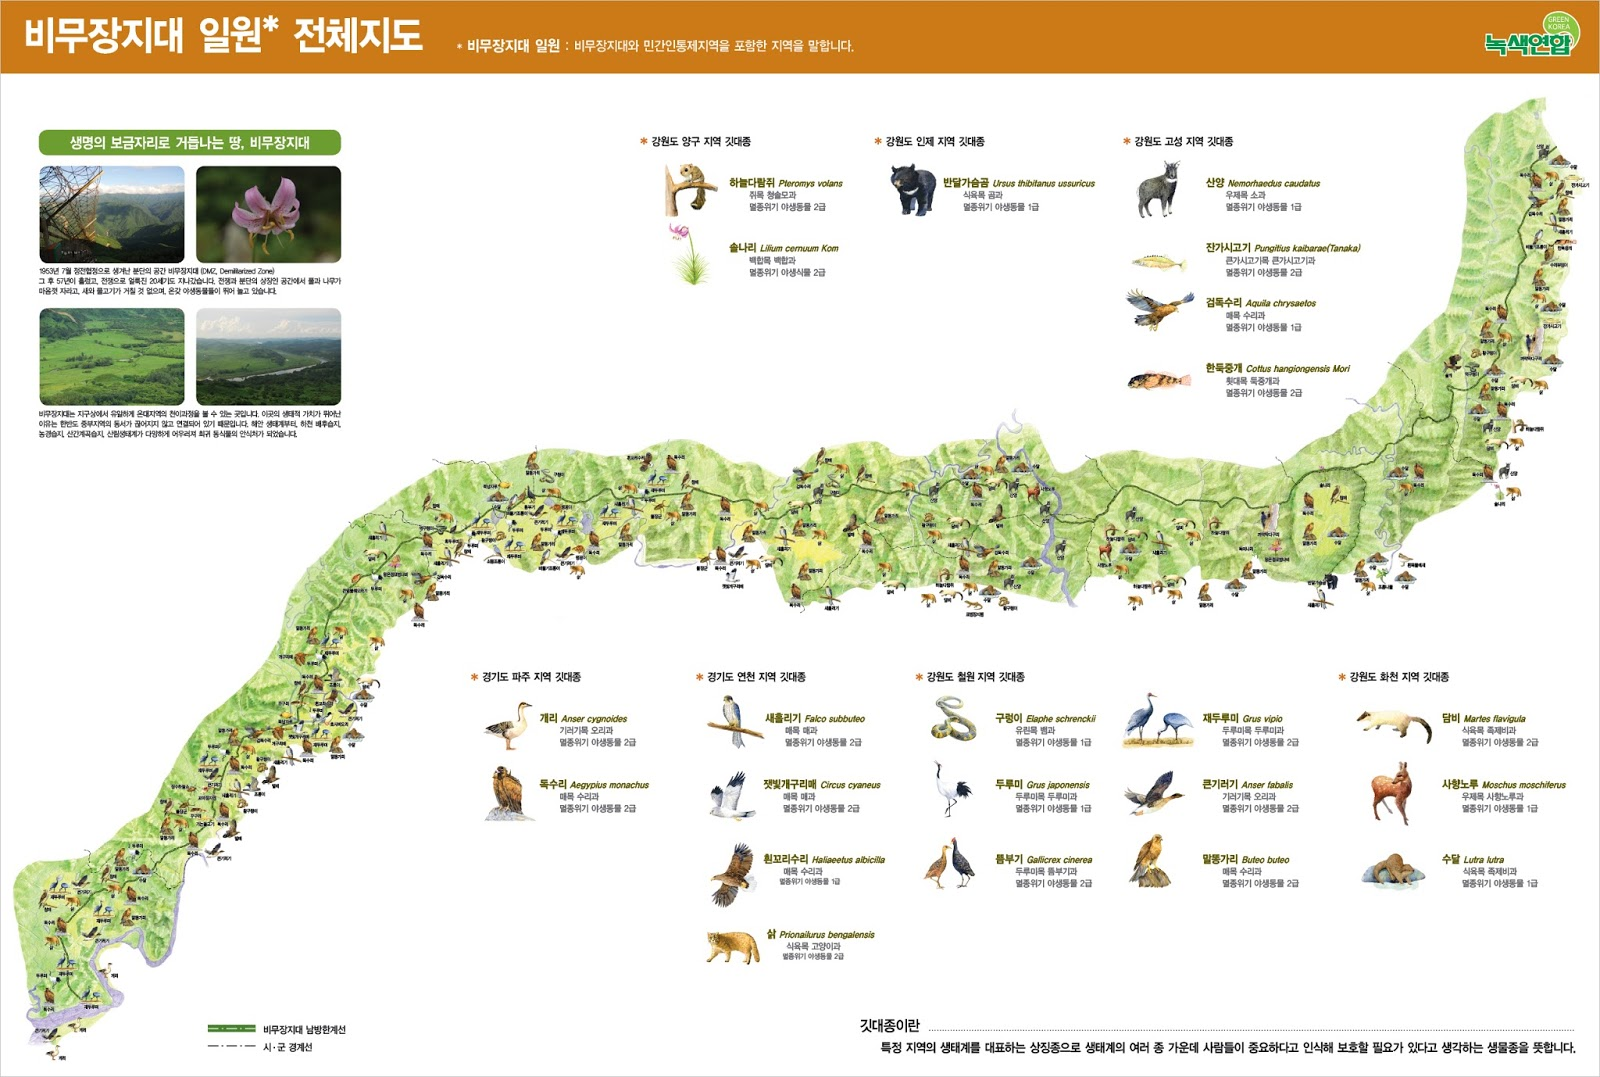 Map of the Korean Demilitarized Zone & the endangered animals that live in it